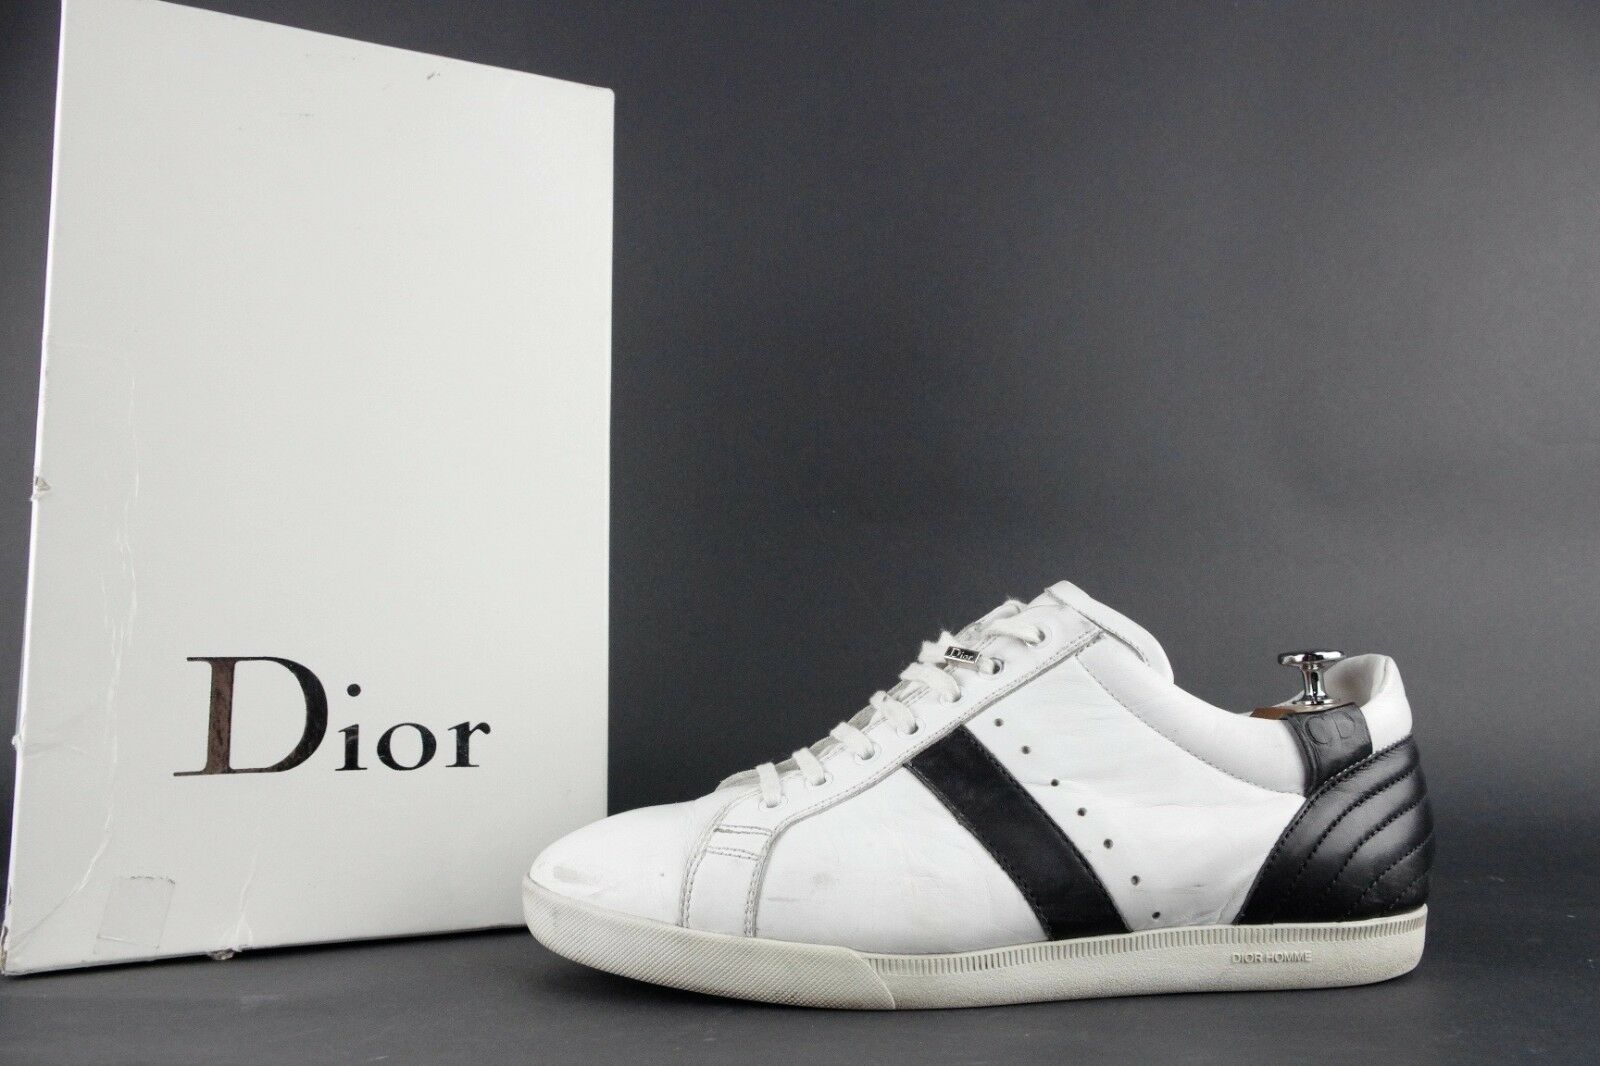 DIOR HOMME Homme Leather  chaussures  B12 AW05 Hedi Slimane 43 44 11 Blanc Noir GAT